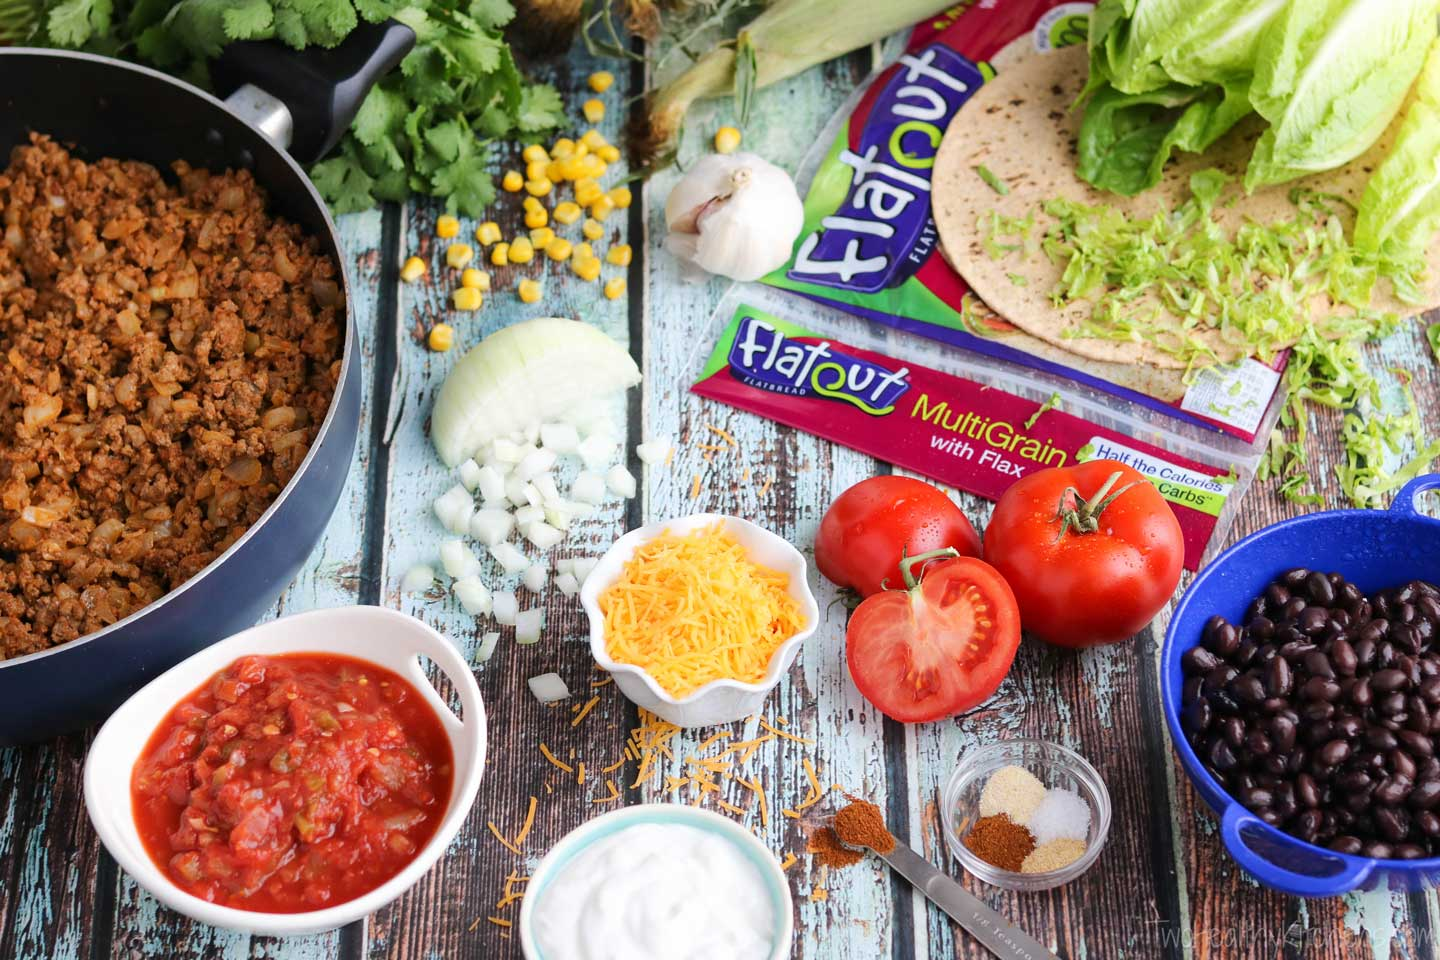 These healthy beef tacos rely on plenty of super-nutritious ingredients – lots of veggies, extra-lean ground beef, reduced-fat dairy products, and also protein-packed, fiber-rich flatbreads.